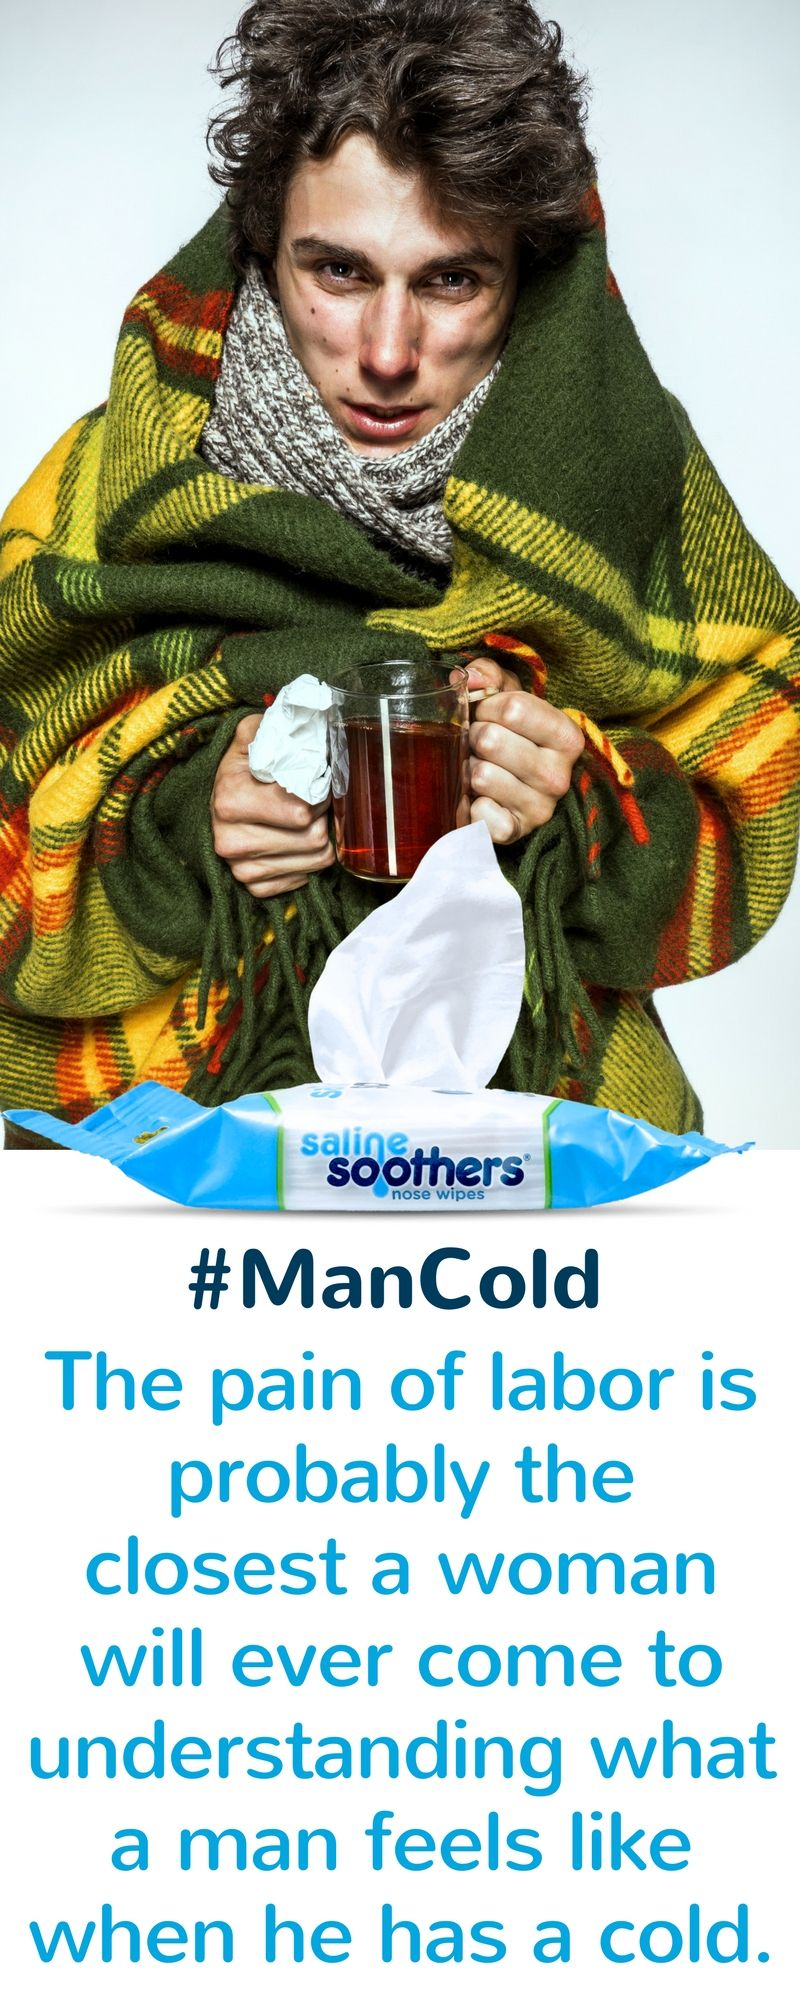 Why is man cold 22